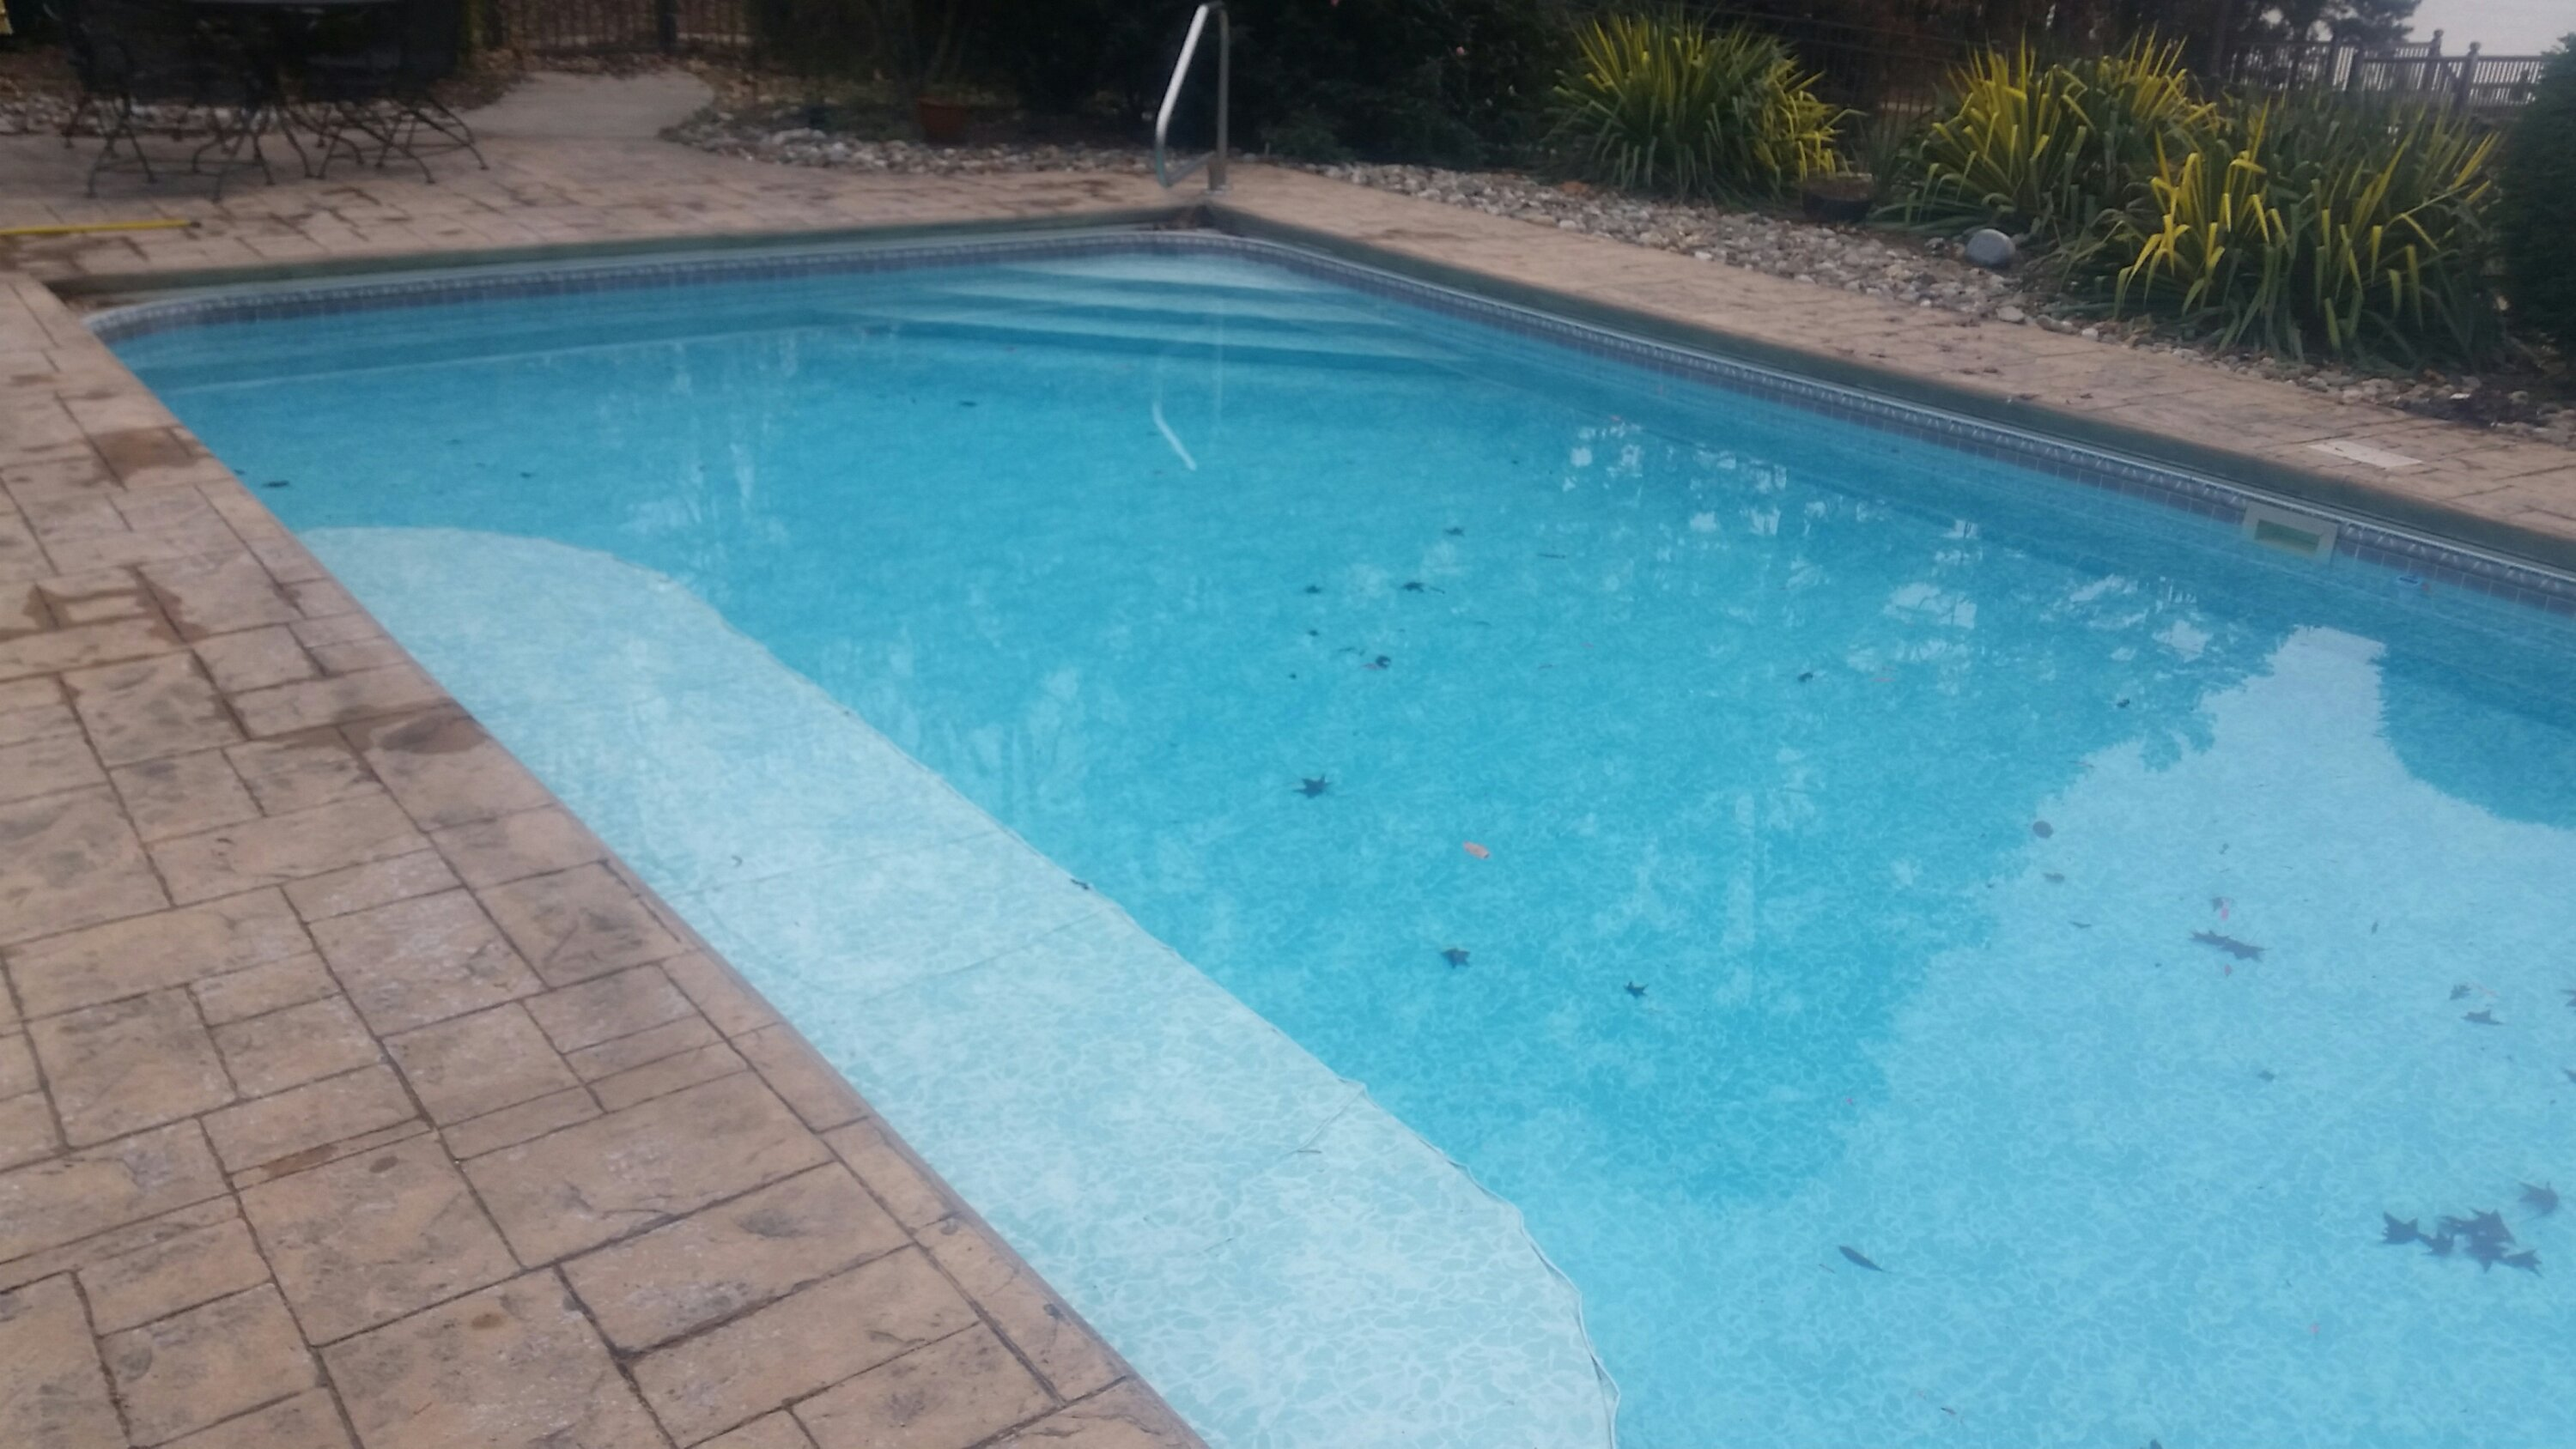 Pool leaking due to freeze damage nps leak detection for Installing pool liner in cold weather